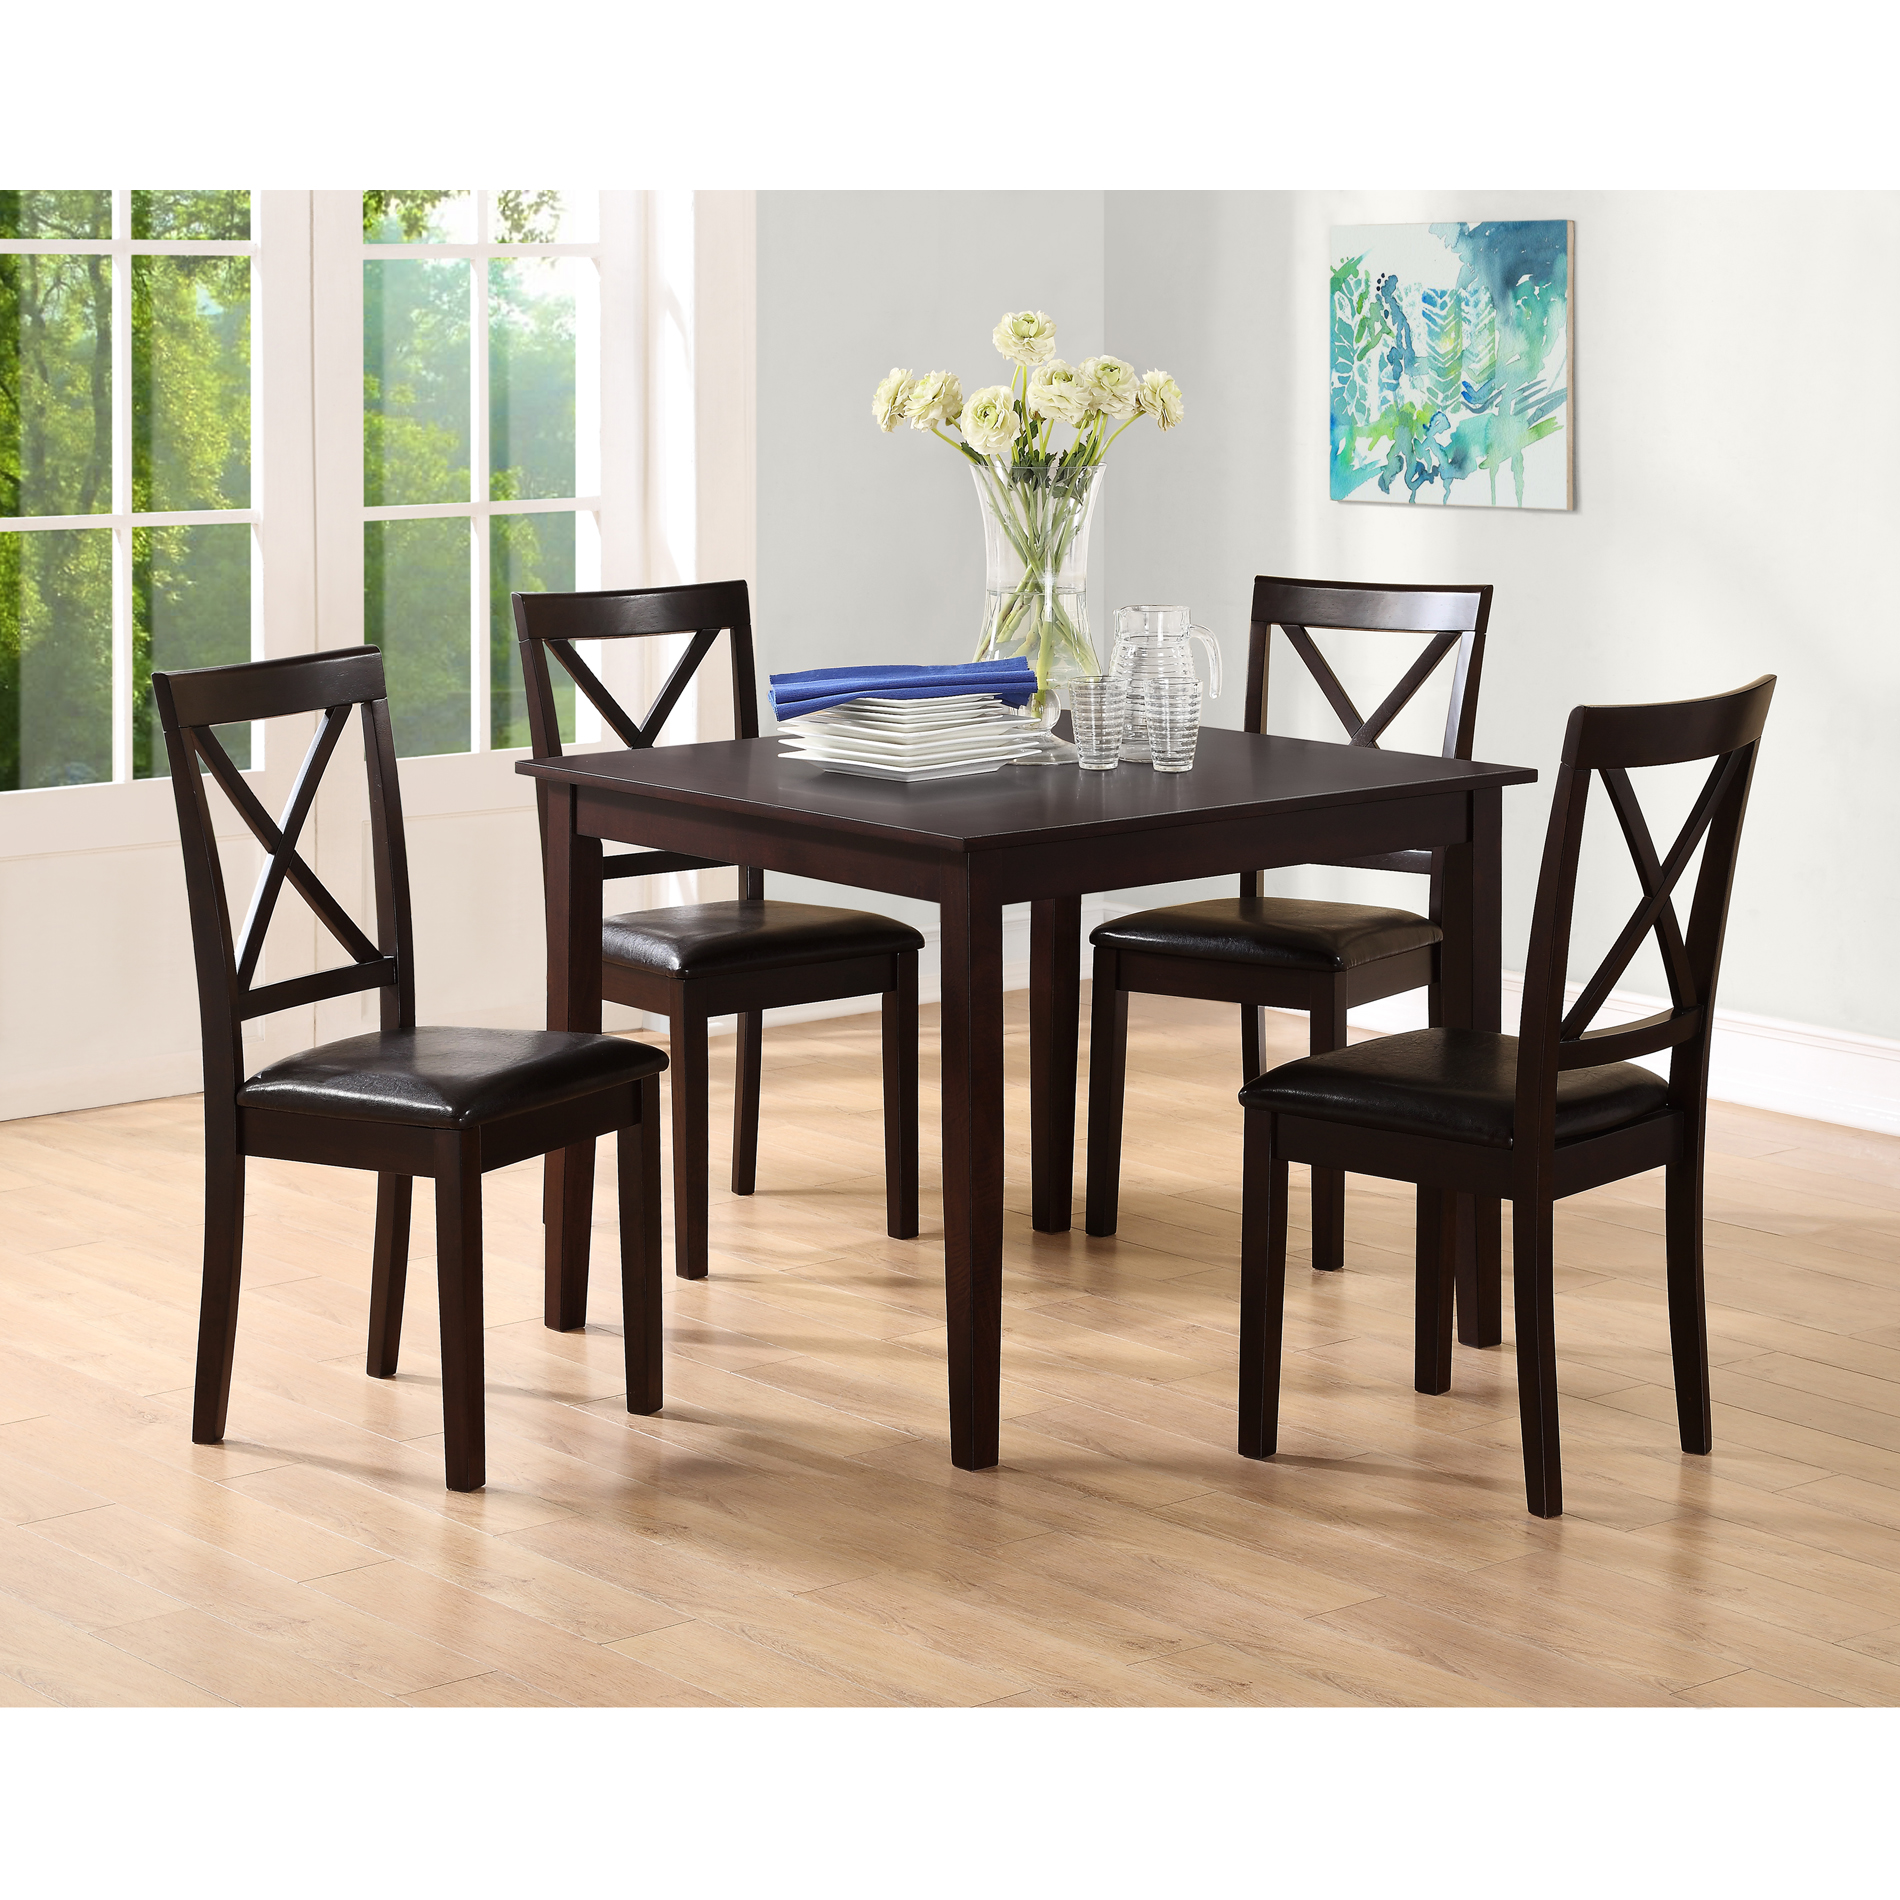 dining table and chairs dorel living sydney 5 pc dining set QZOKDPN